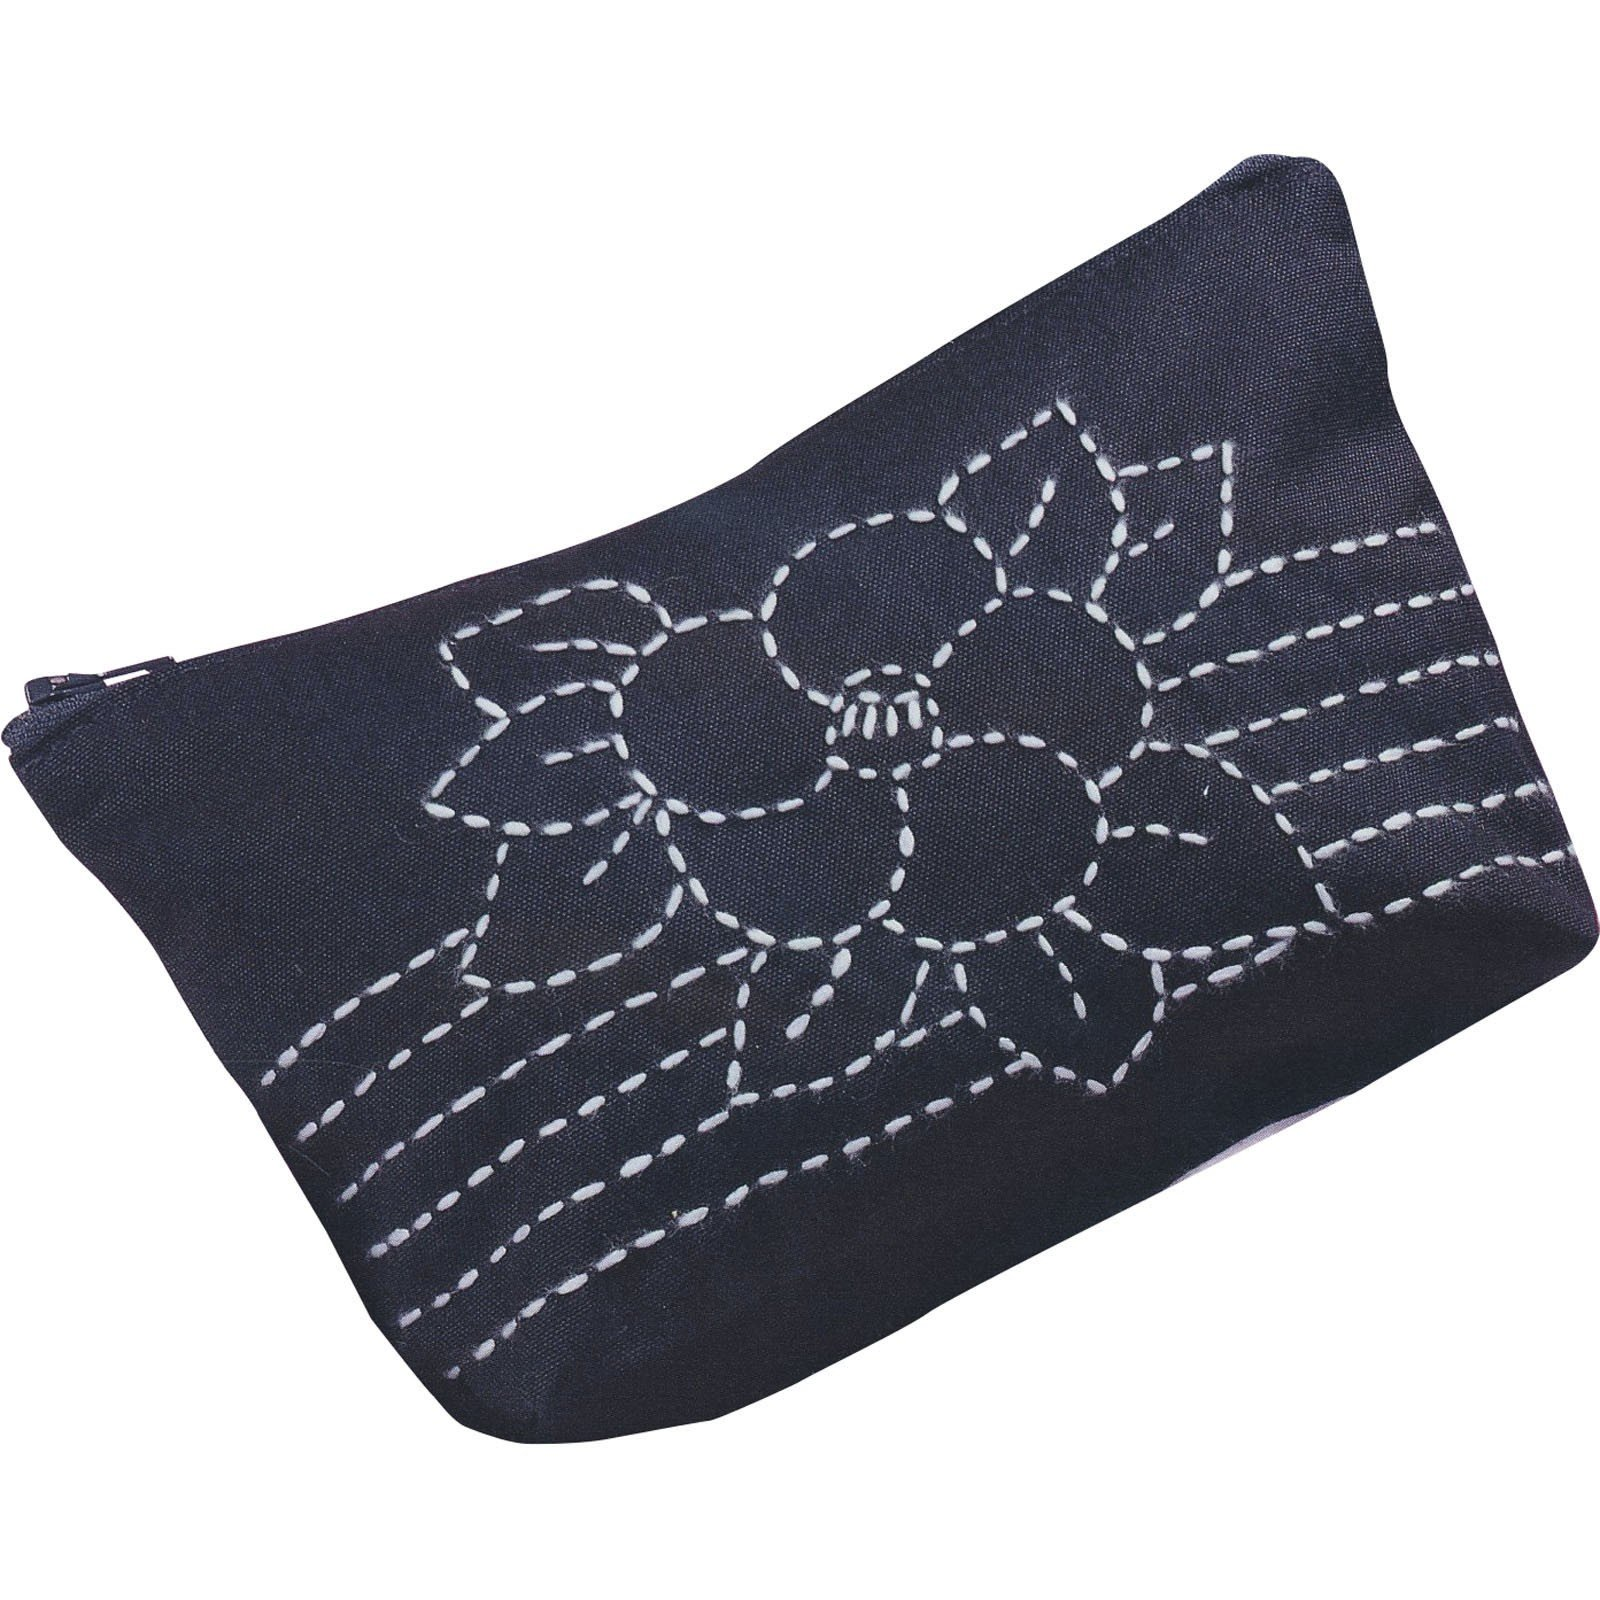 Olympus Sashiko Kit Cameilla Bloom Pre-Made Pouch SK-100